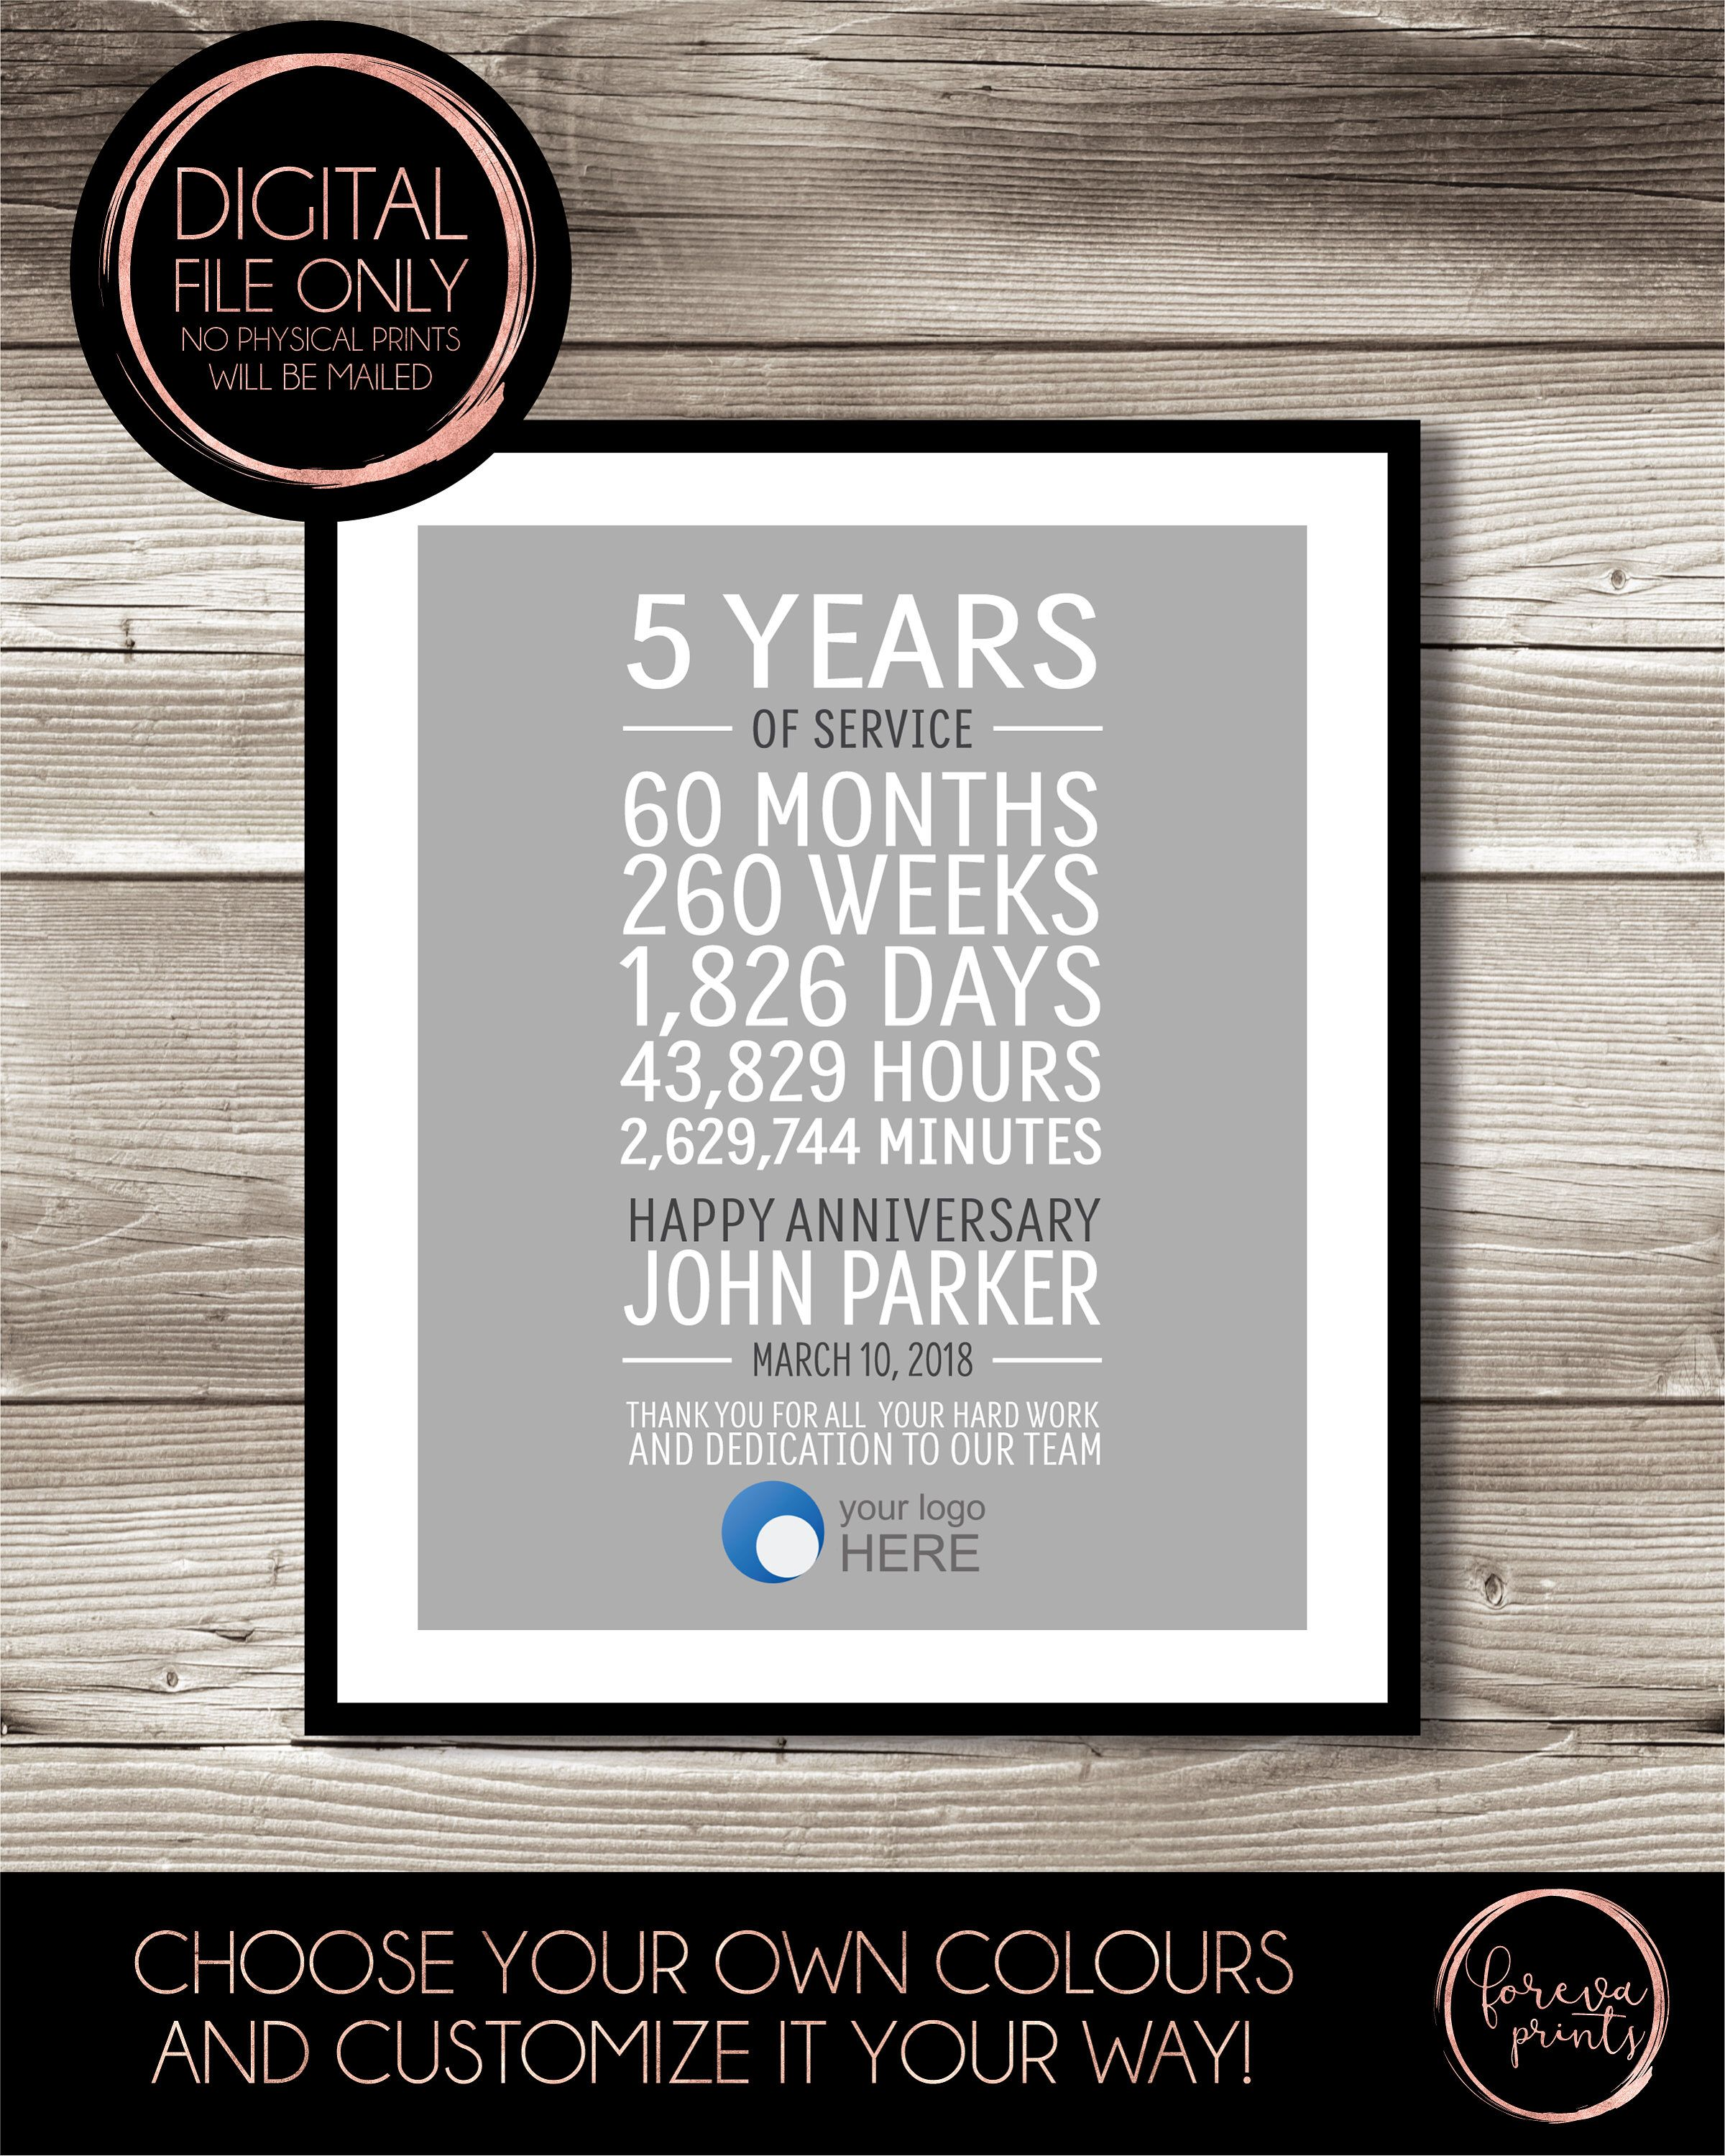 5 Year Work Anniversary Print Gift Idea Customizable Thank You Gift Years Of Service Retirement Employee Recognition Appreciation Work Anniversary Work Anniversary Gifts Employee Recognition